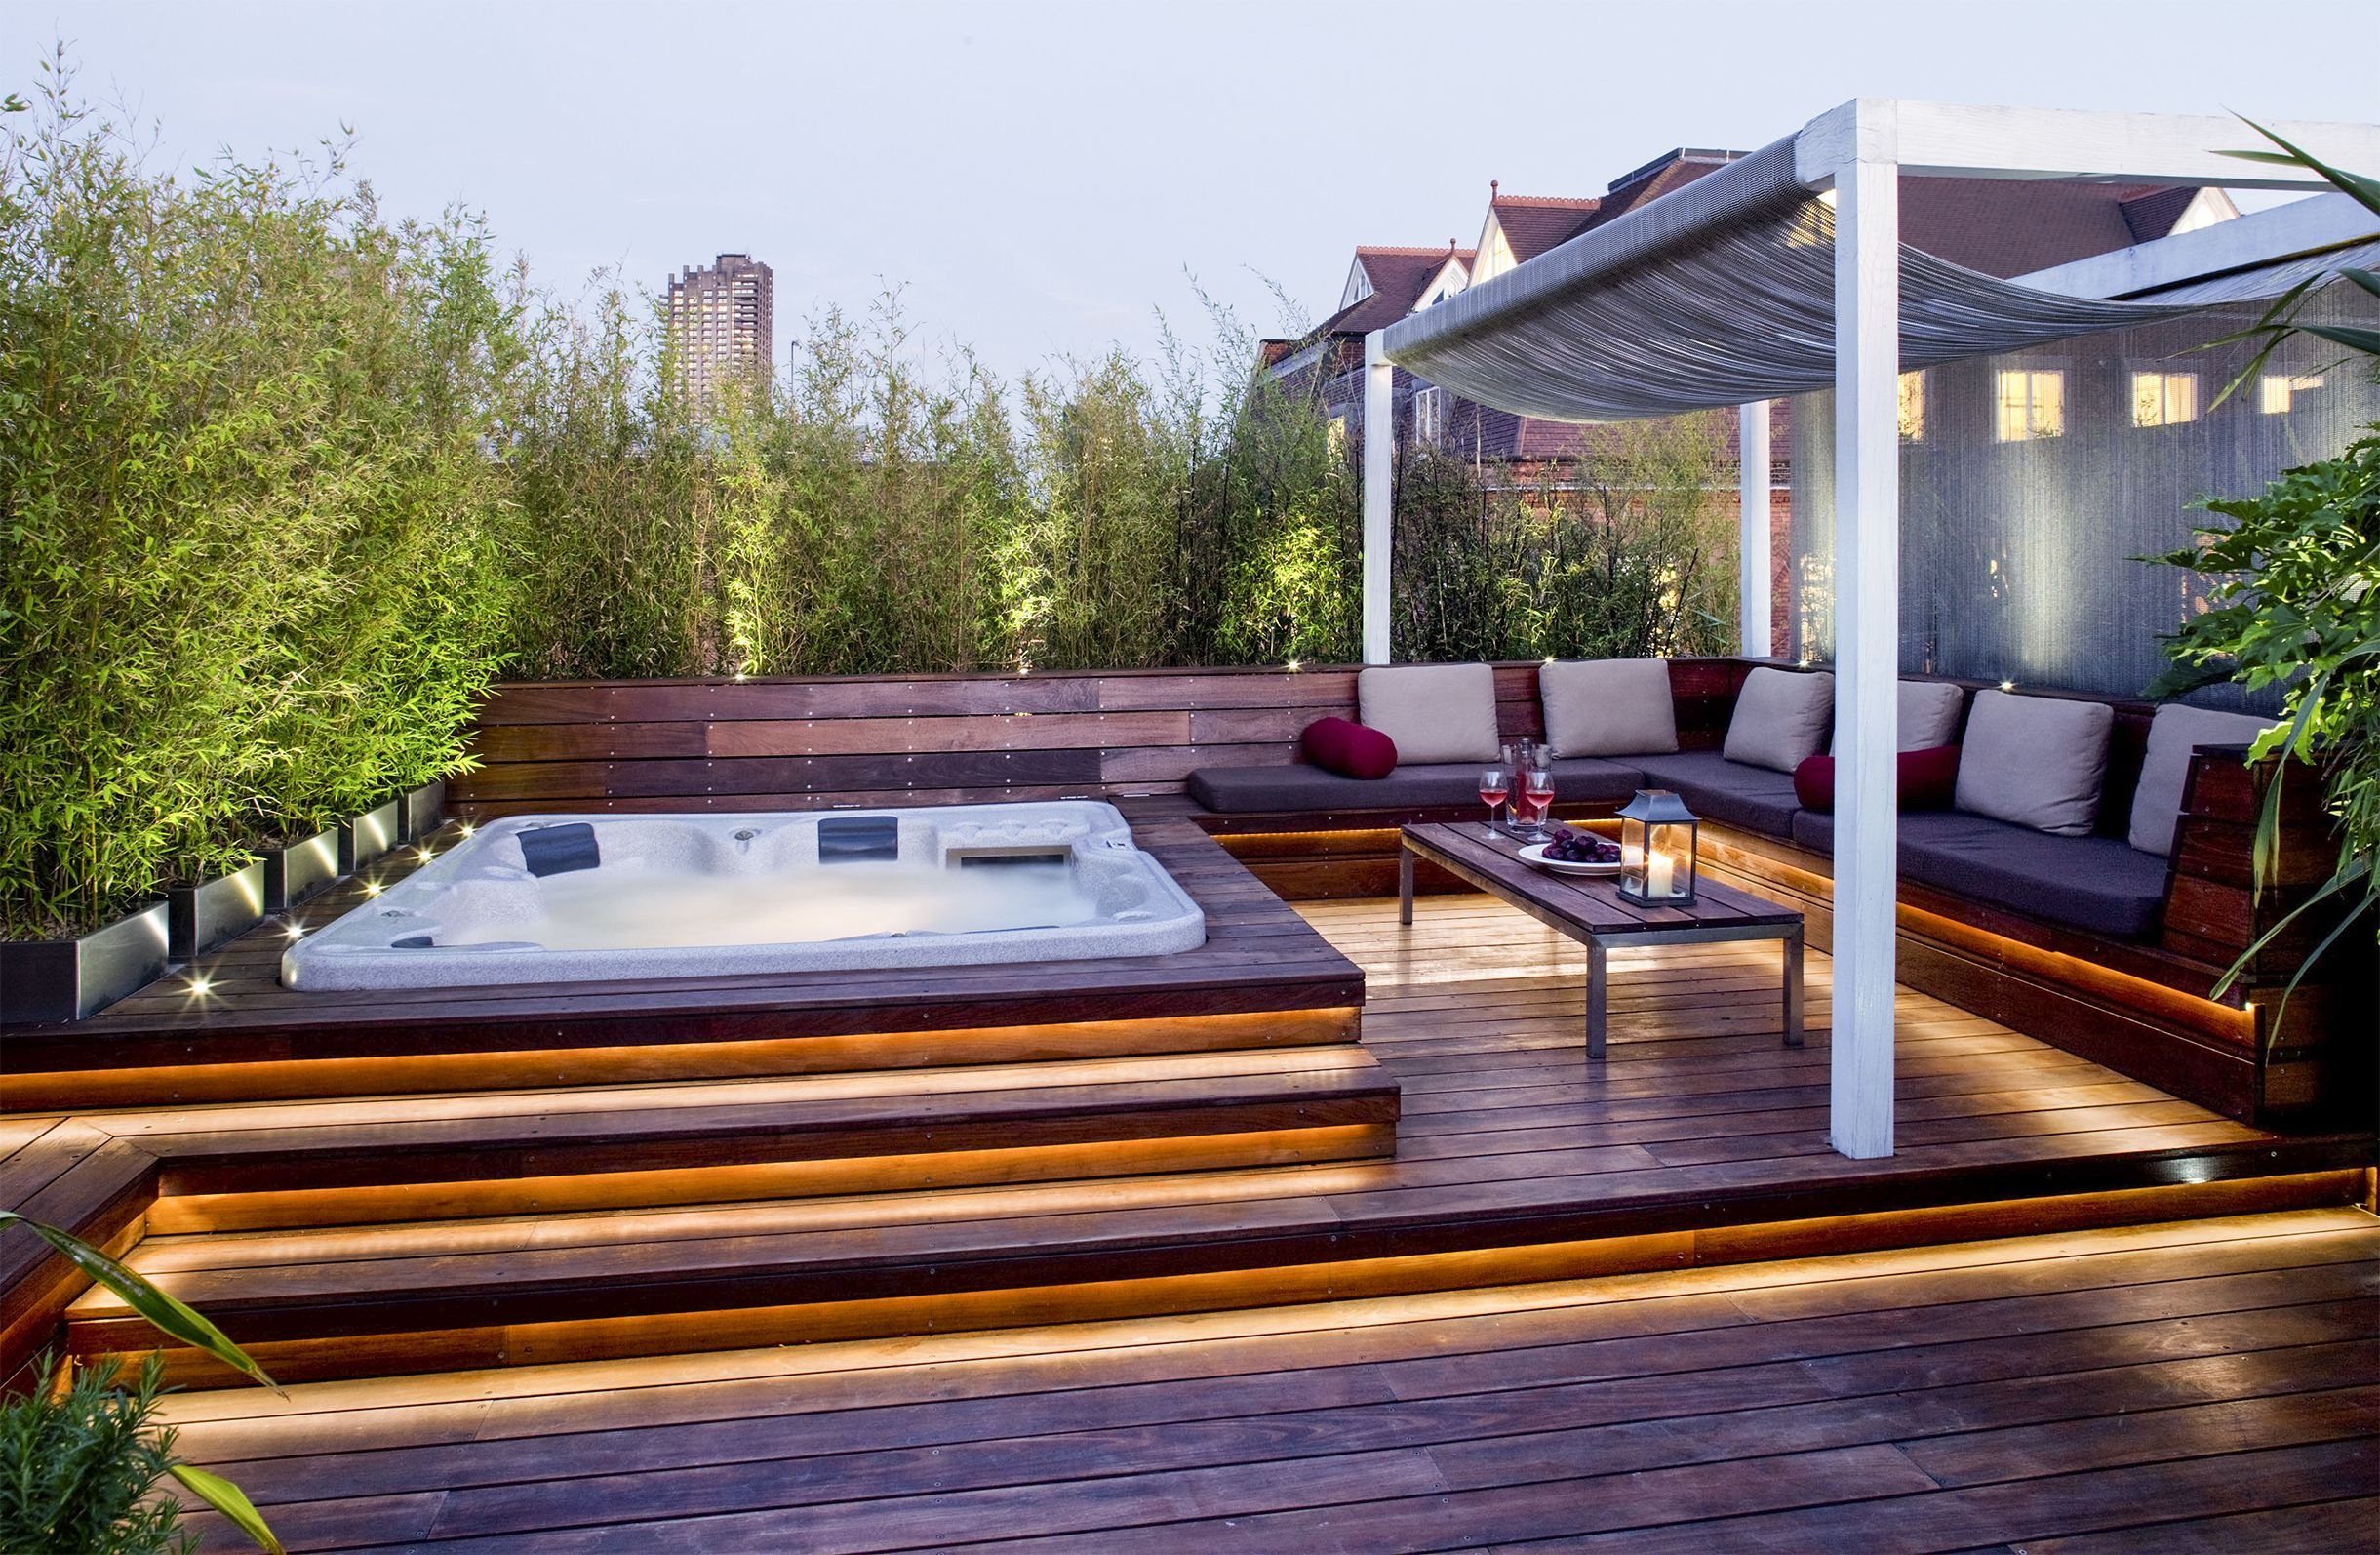 Mini Spa Da Casa outdoor jacuzzi ideas: designs, pros, and cons [a complete